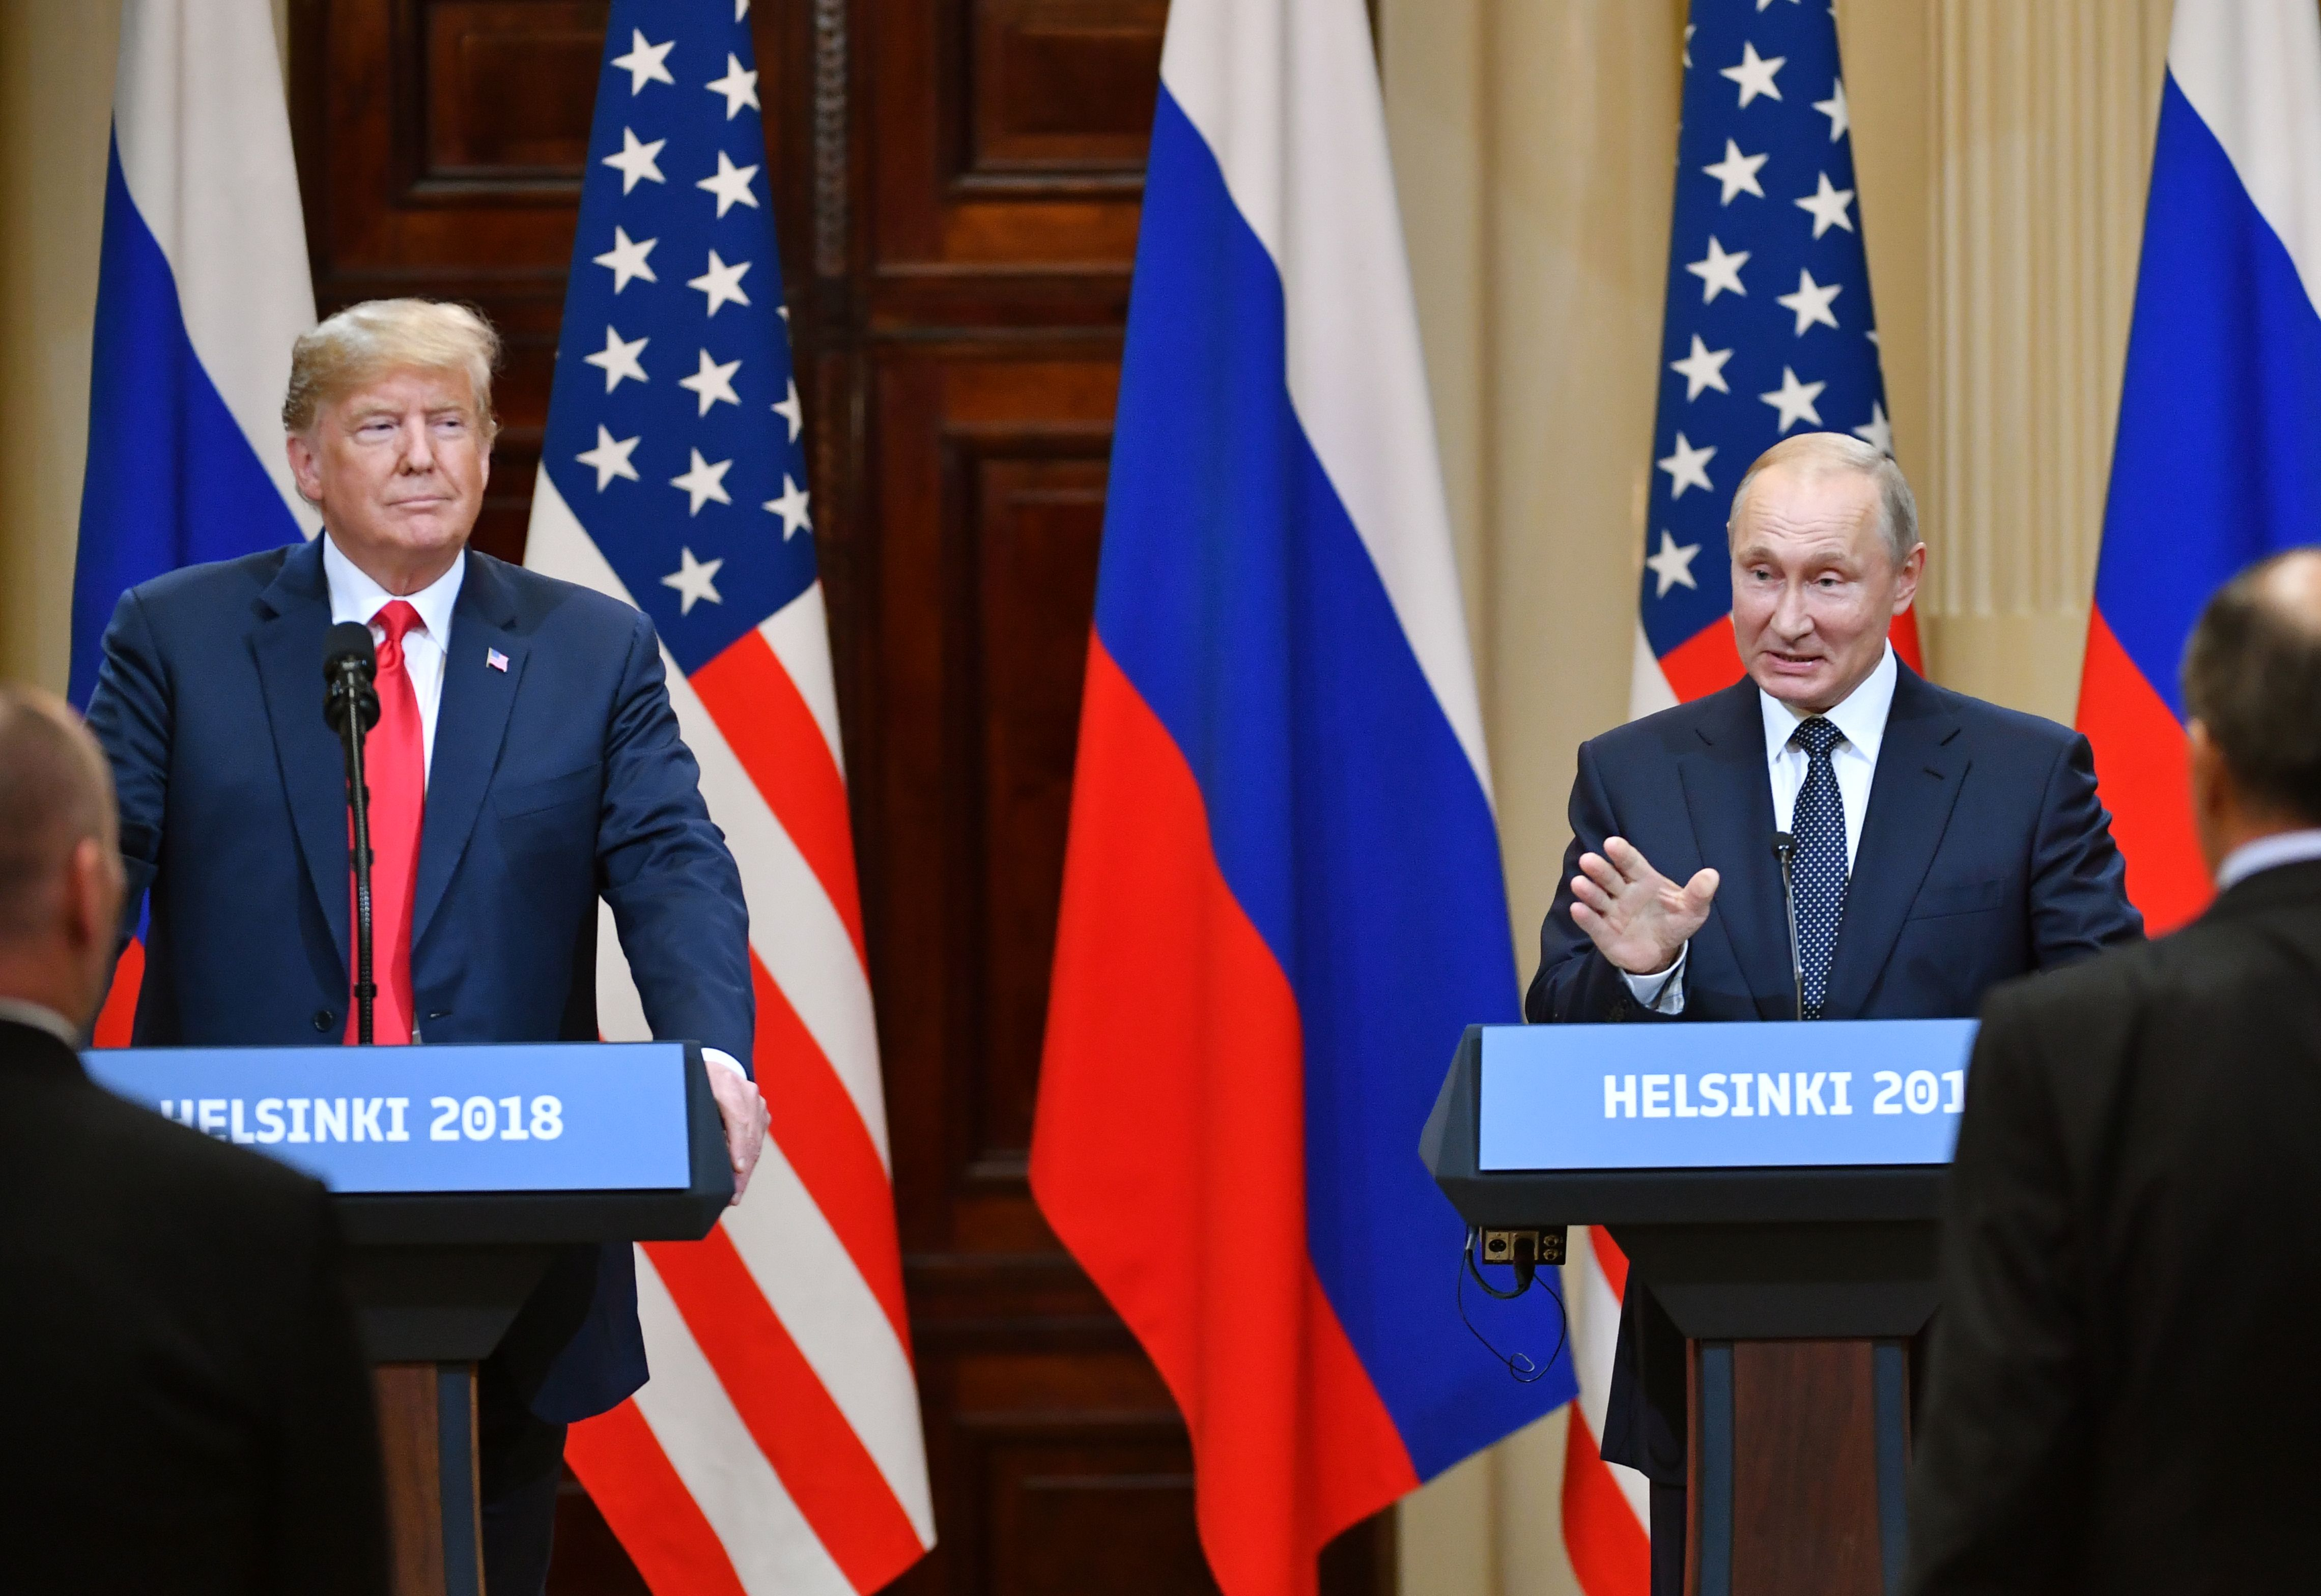 US President Donald Trump (L) and Russia's President Vladimir Putin attend a joint press conference after a meeting at the Presidential Palace in Helsinki, on July 16, 2018.